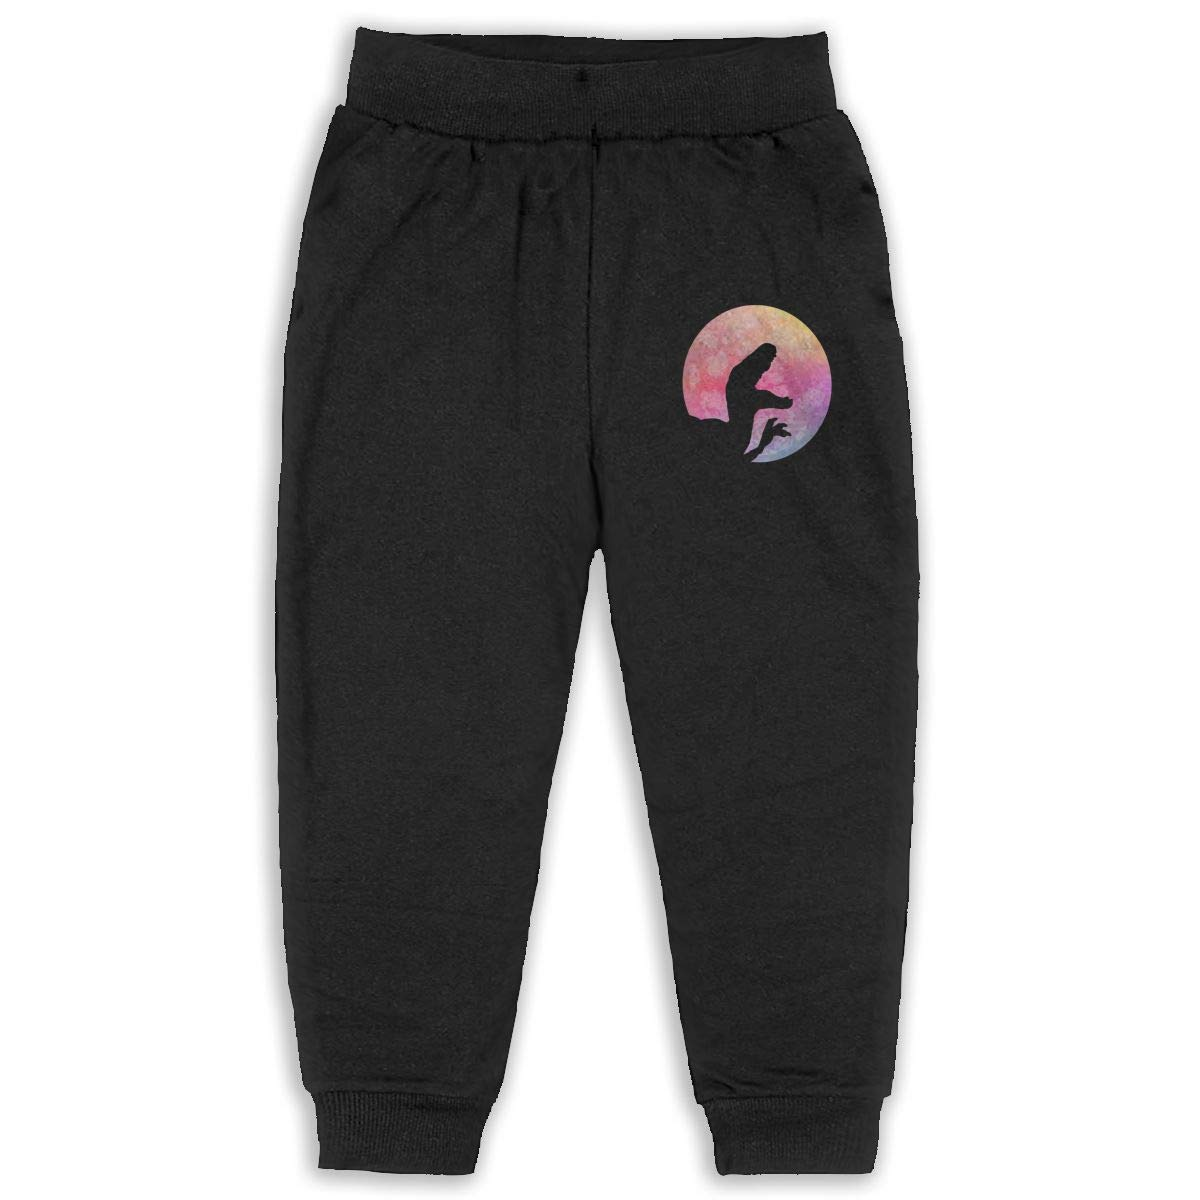 Child T-Rex Moon Unisex 2-6T Autumn and Winter Cotton Fashion Pants